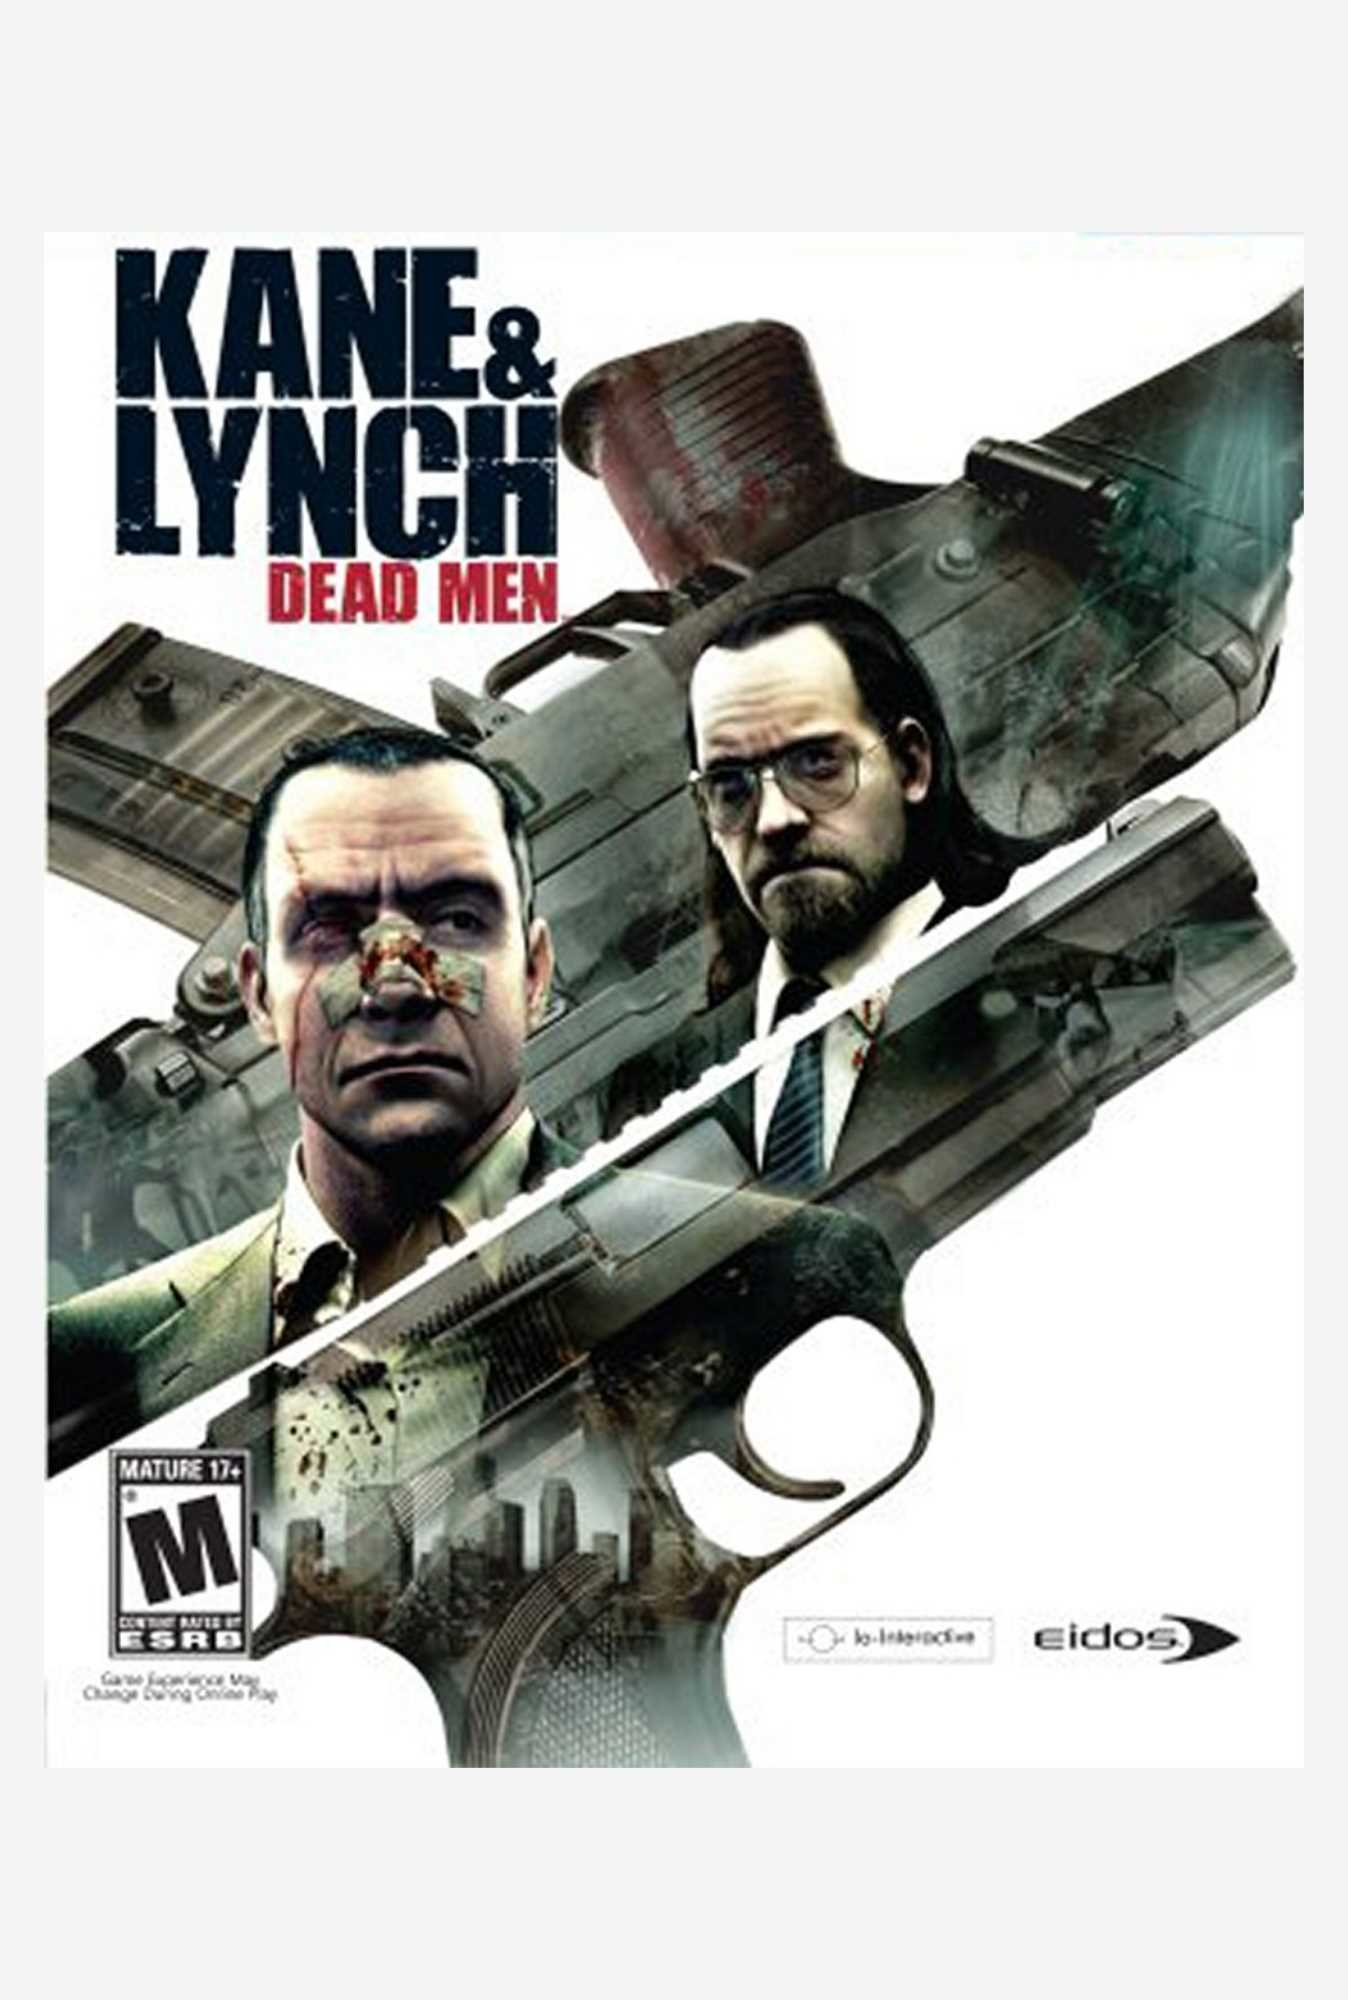 Kane and lynch: dead men xbox